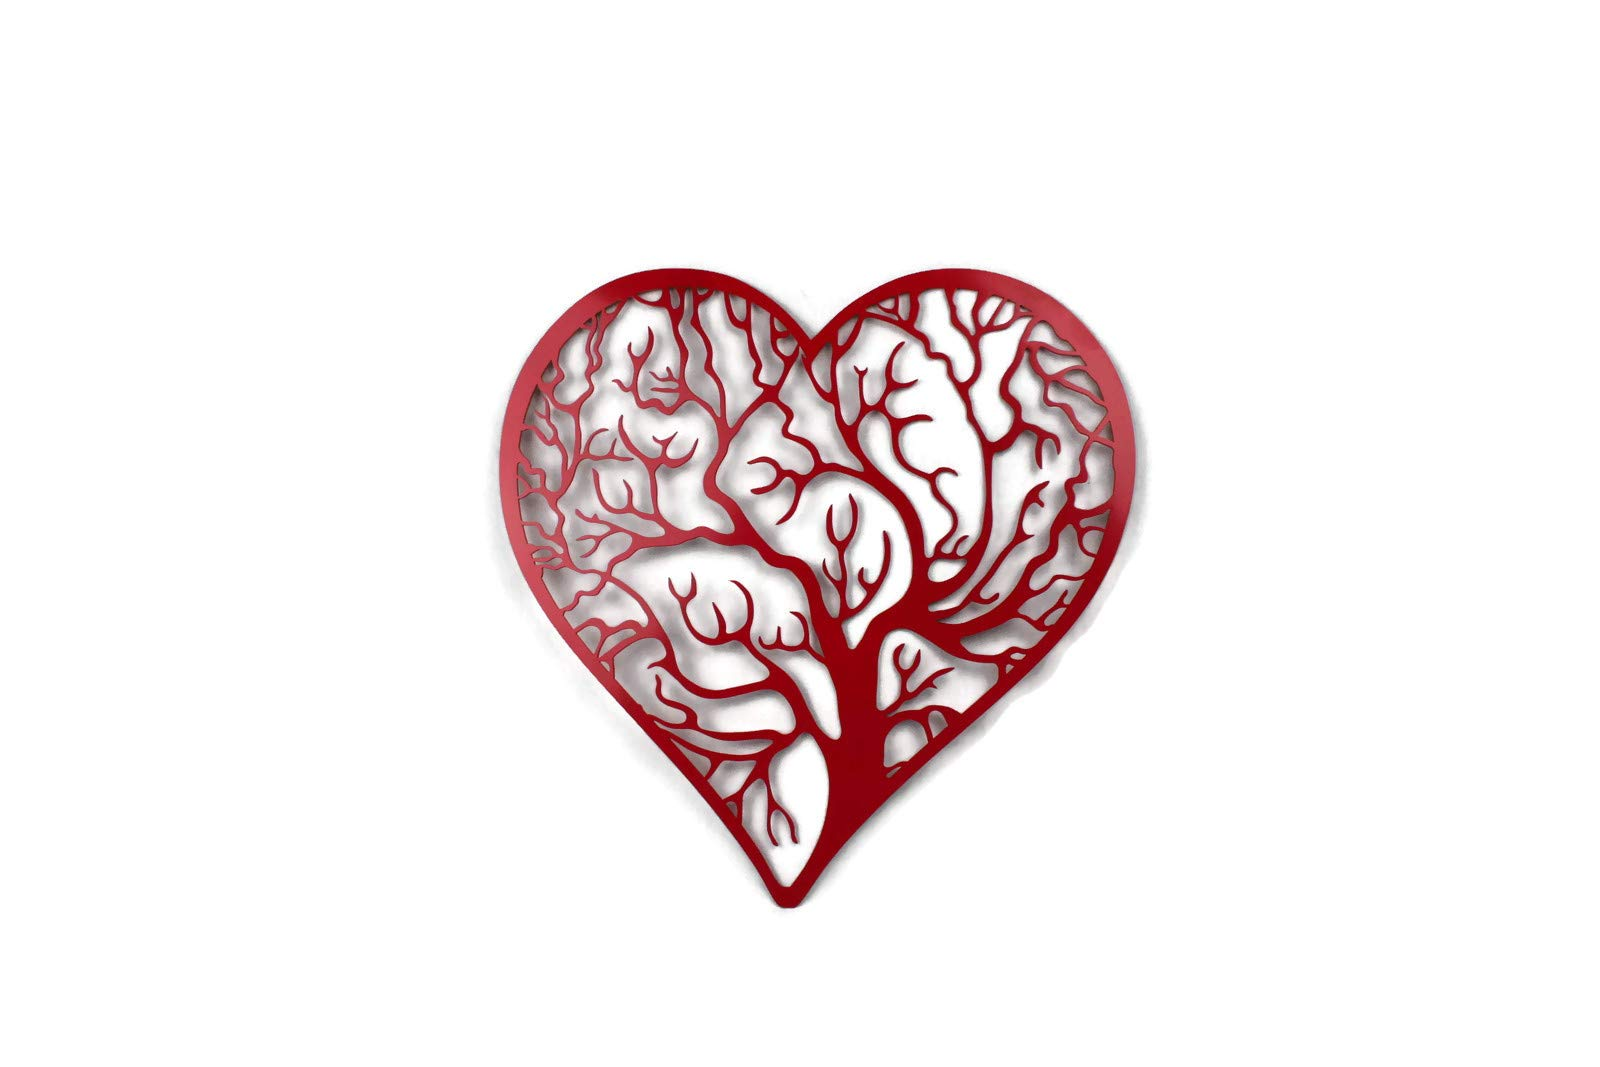 81 Metal Art Banded Heart Shape Tree of Life Steel Plaque (Red, 16x16)